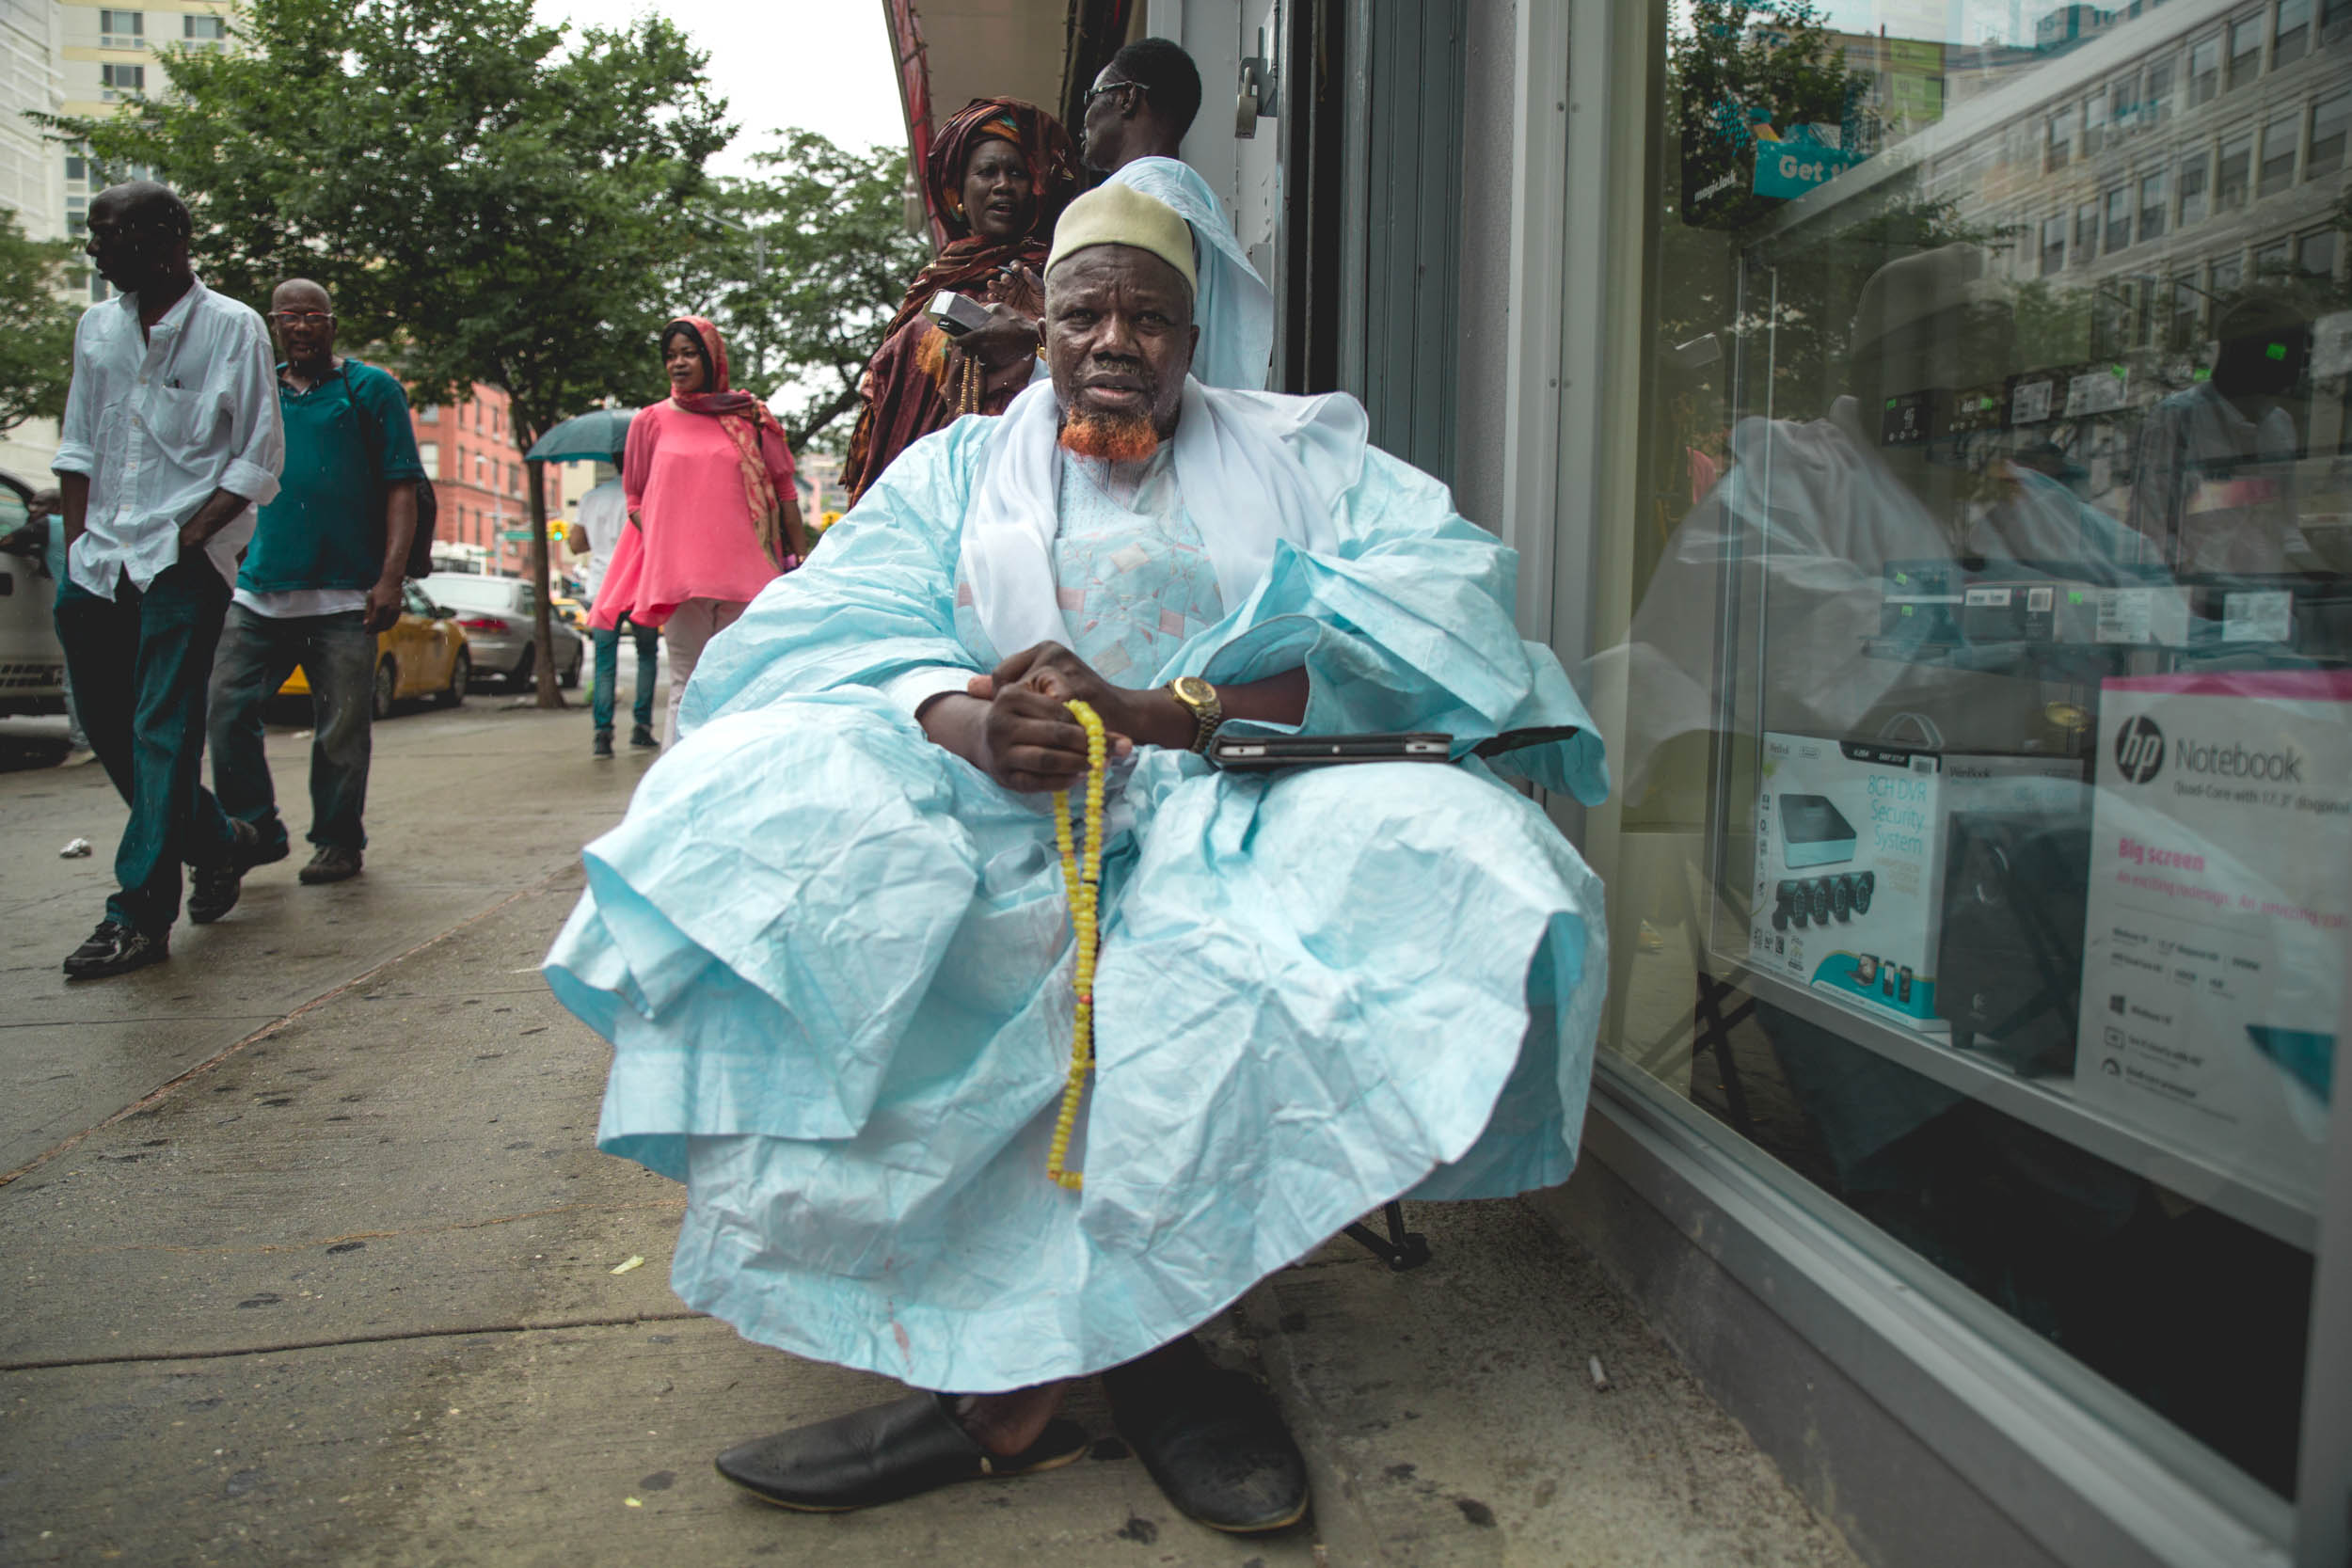 West African Muslim in East Harlem.